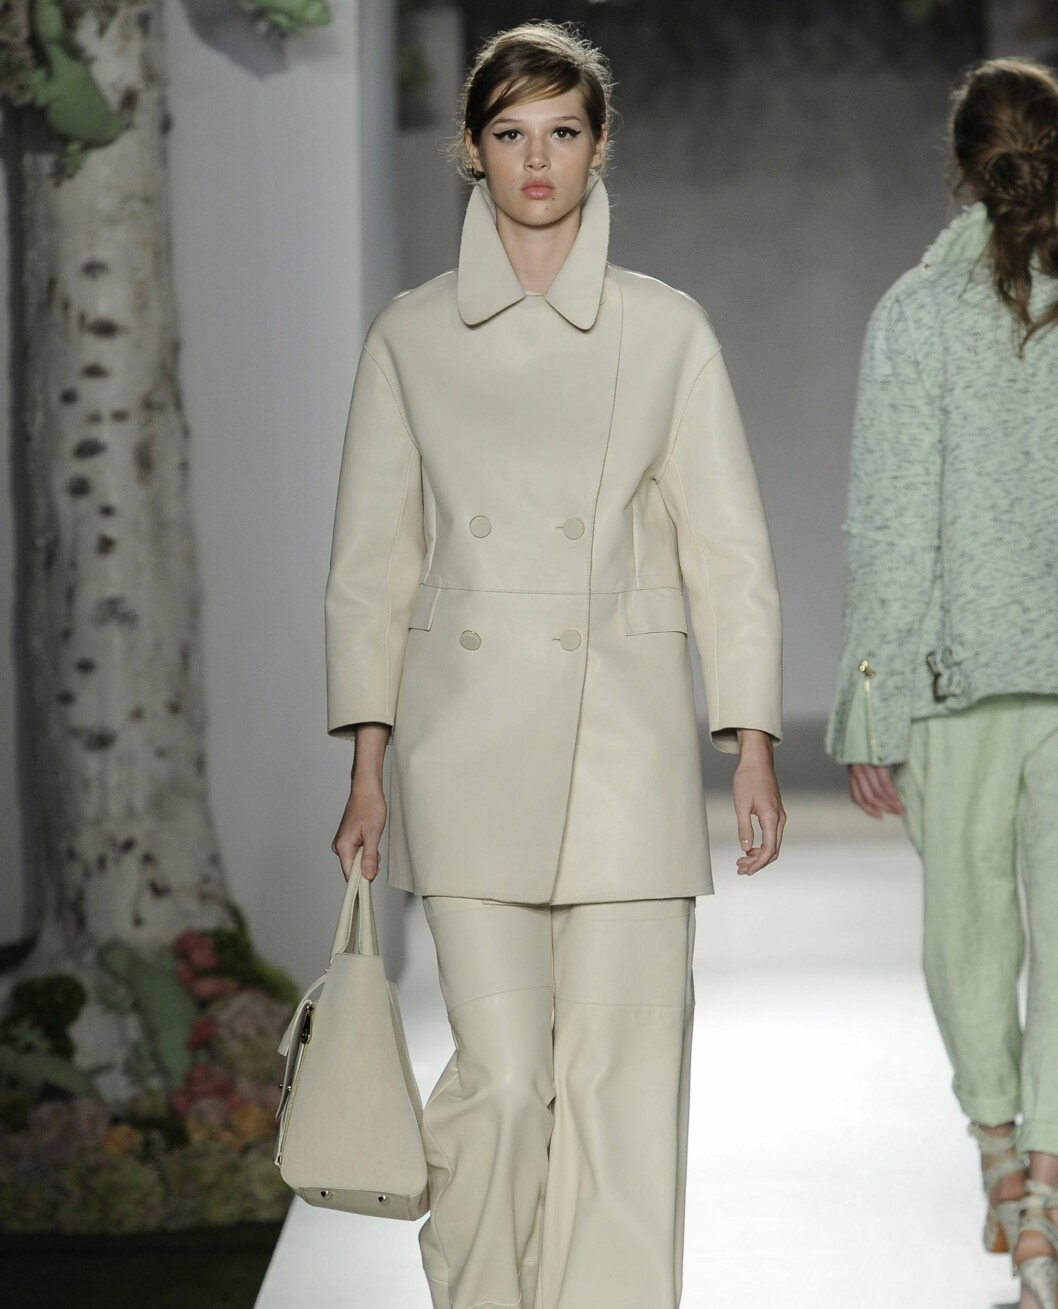 Mulberry SS13 Foto: All Over Press